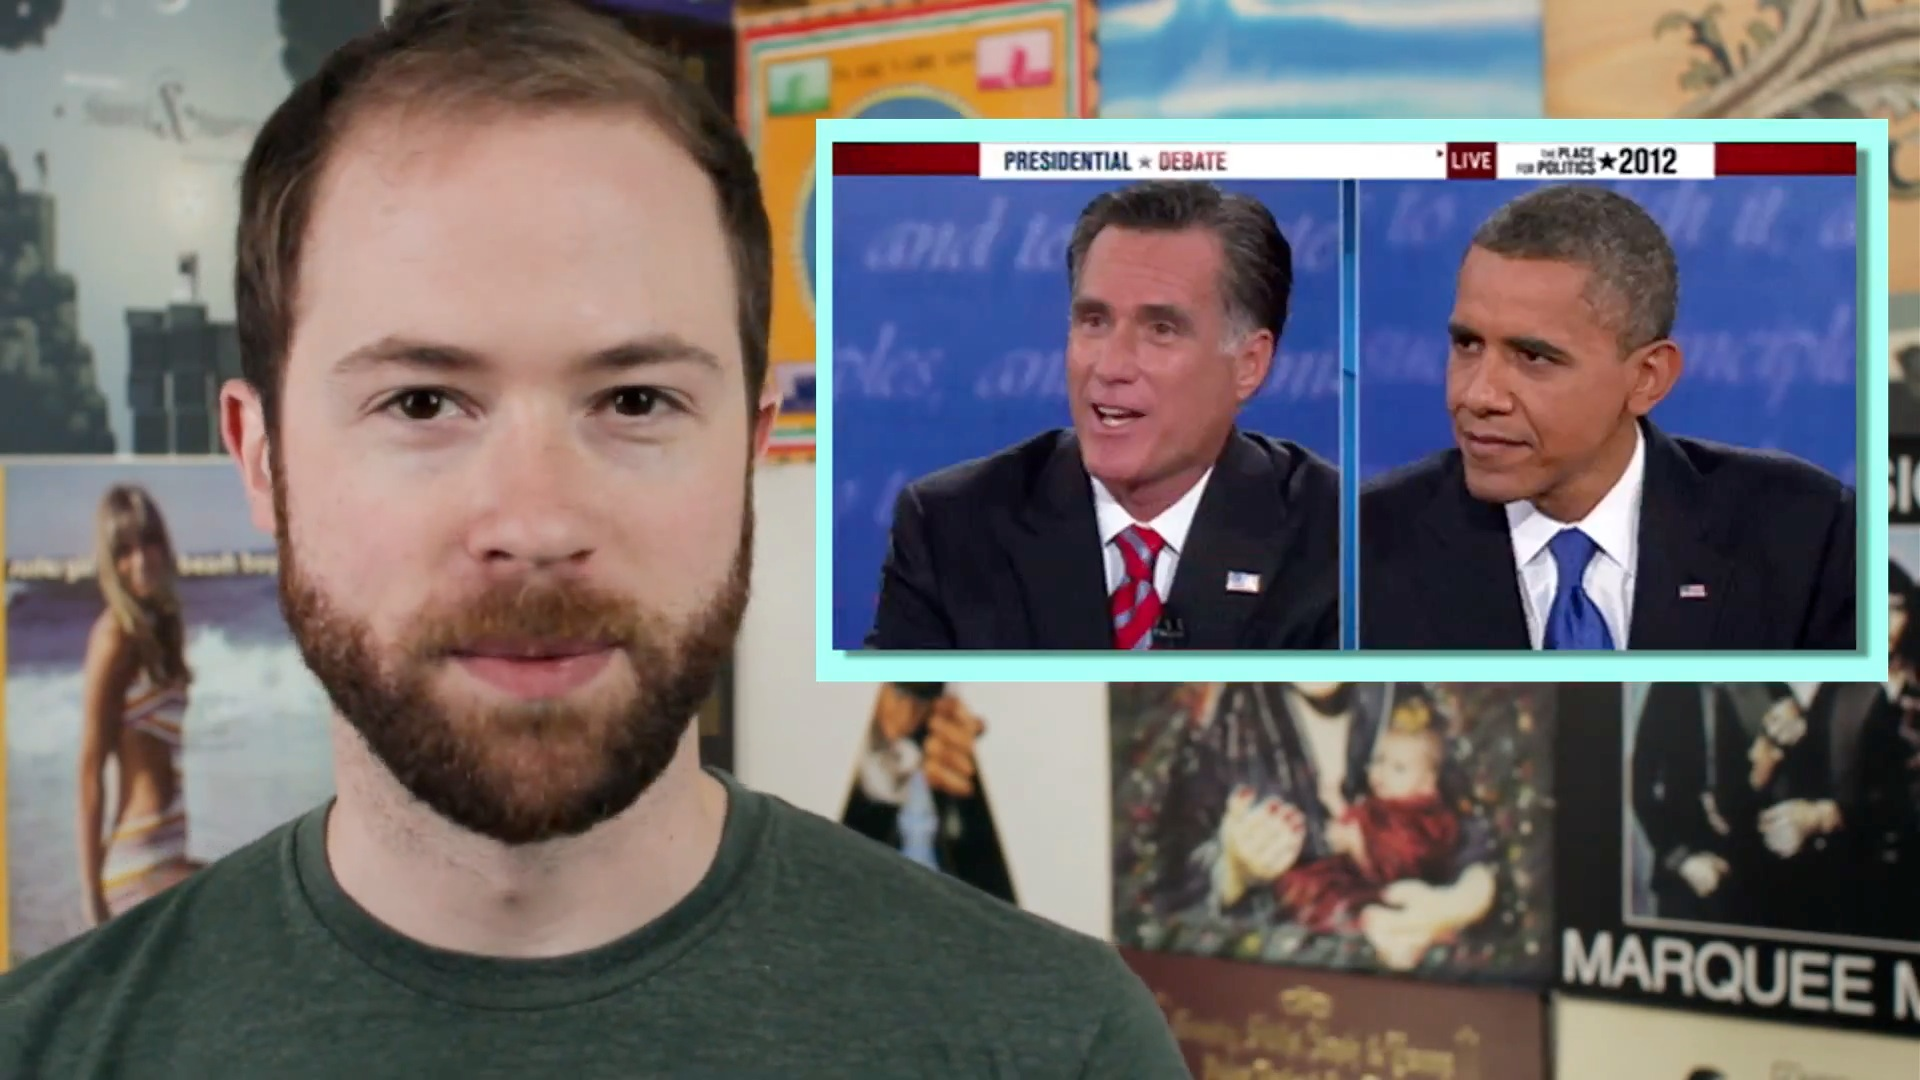 How will the Animated GIF affect the Presidential Election?